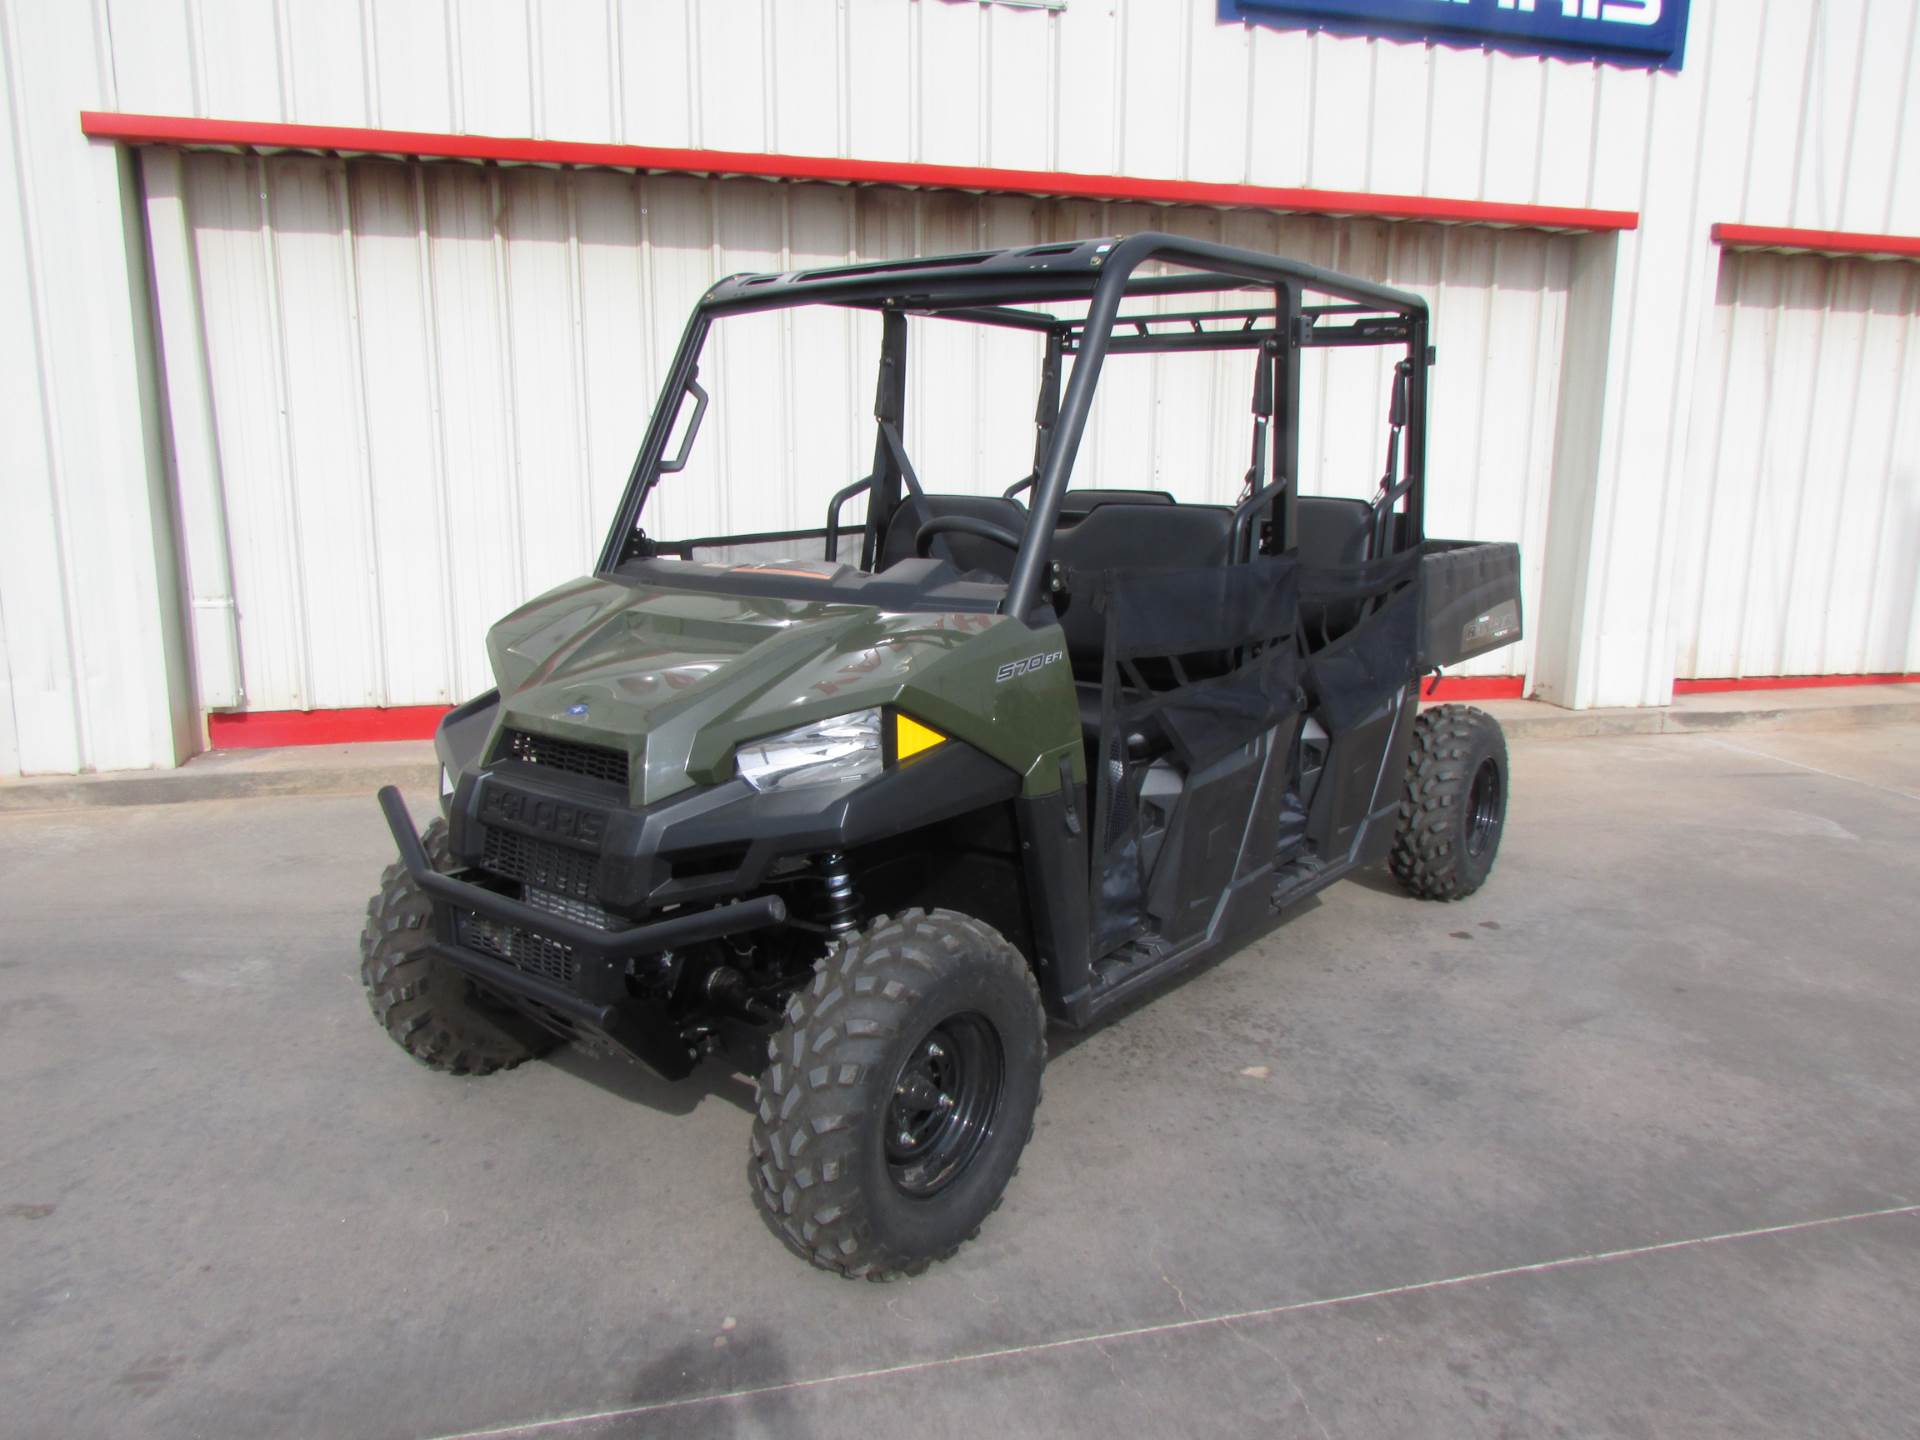 2019 Polaris Ranger 570 Crew in Wichita Falls, Texas